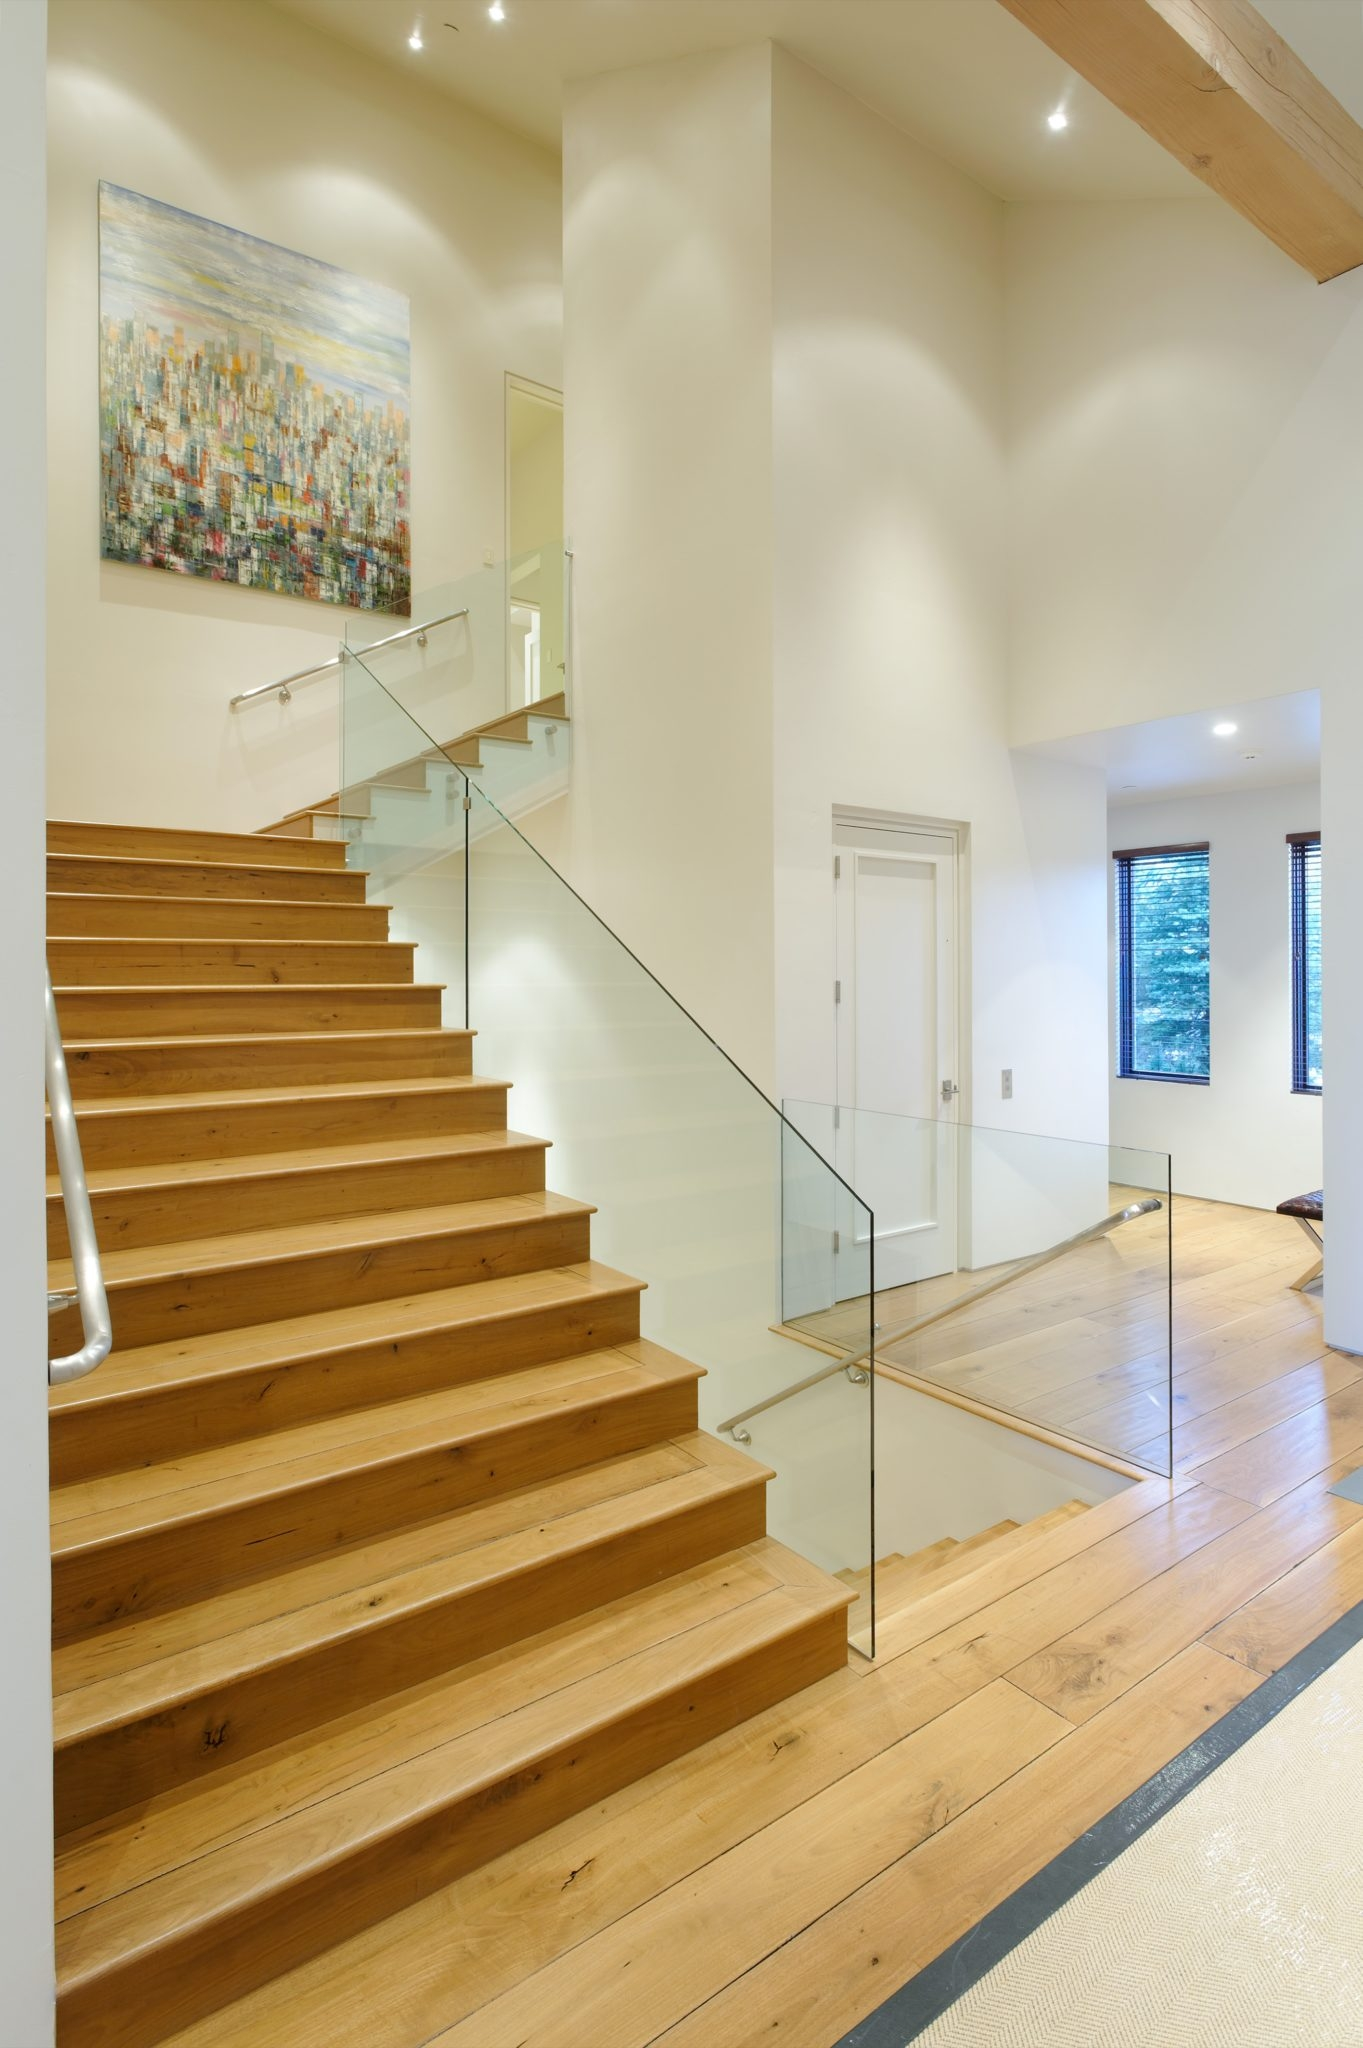 Unique Beautiful Banister Designs Chairish Blog   Unique Handrails For Stairs   Residential Staircase   Hand Rail   Simple   Inside   Interior